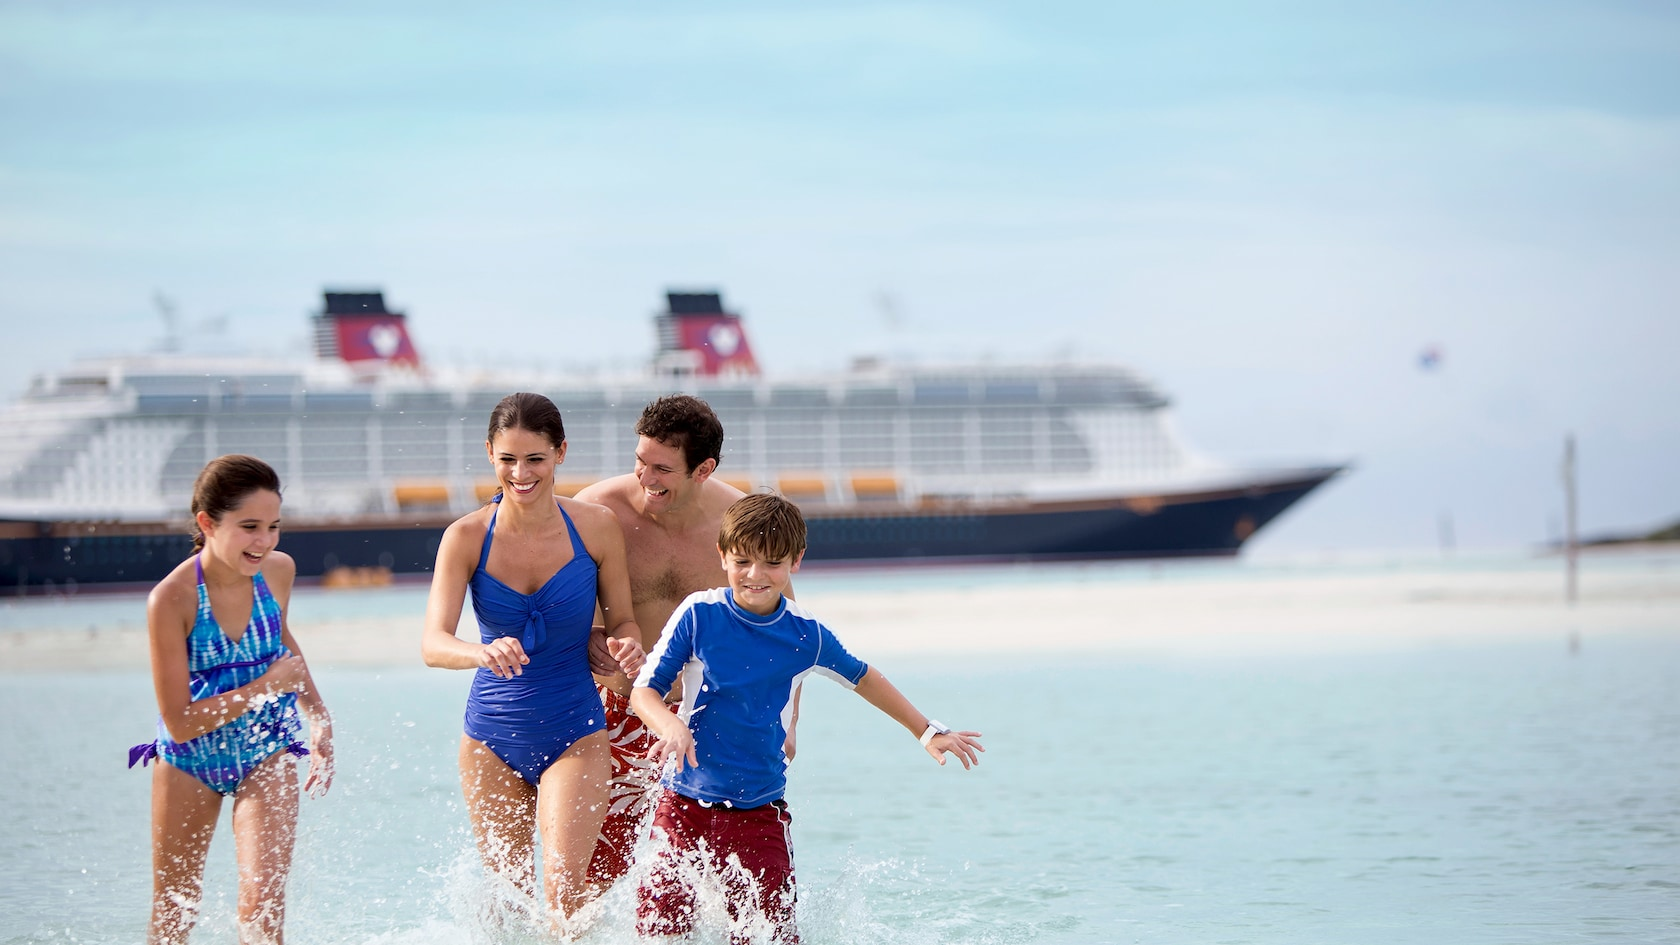 Family splashing in the ocean with Disney Cruise boat in the background